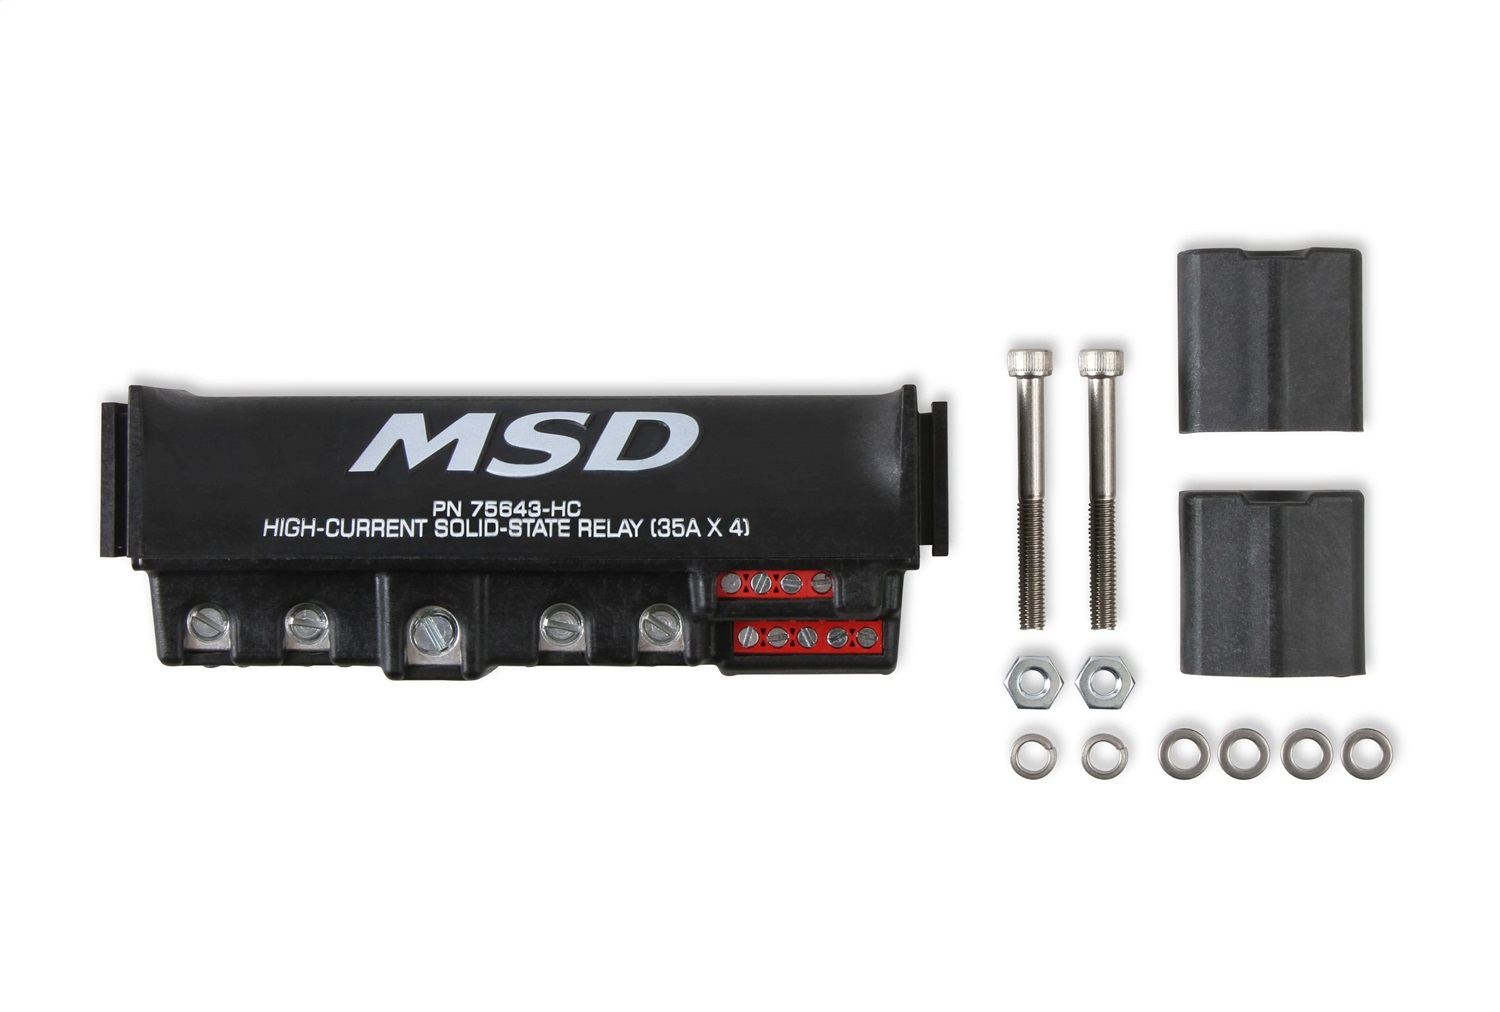 MSD Ignition 75643-HC High Current Relay Block